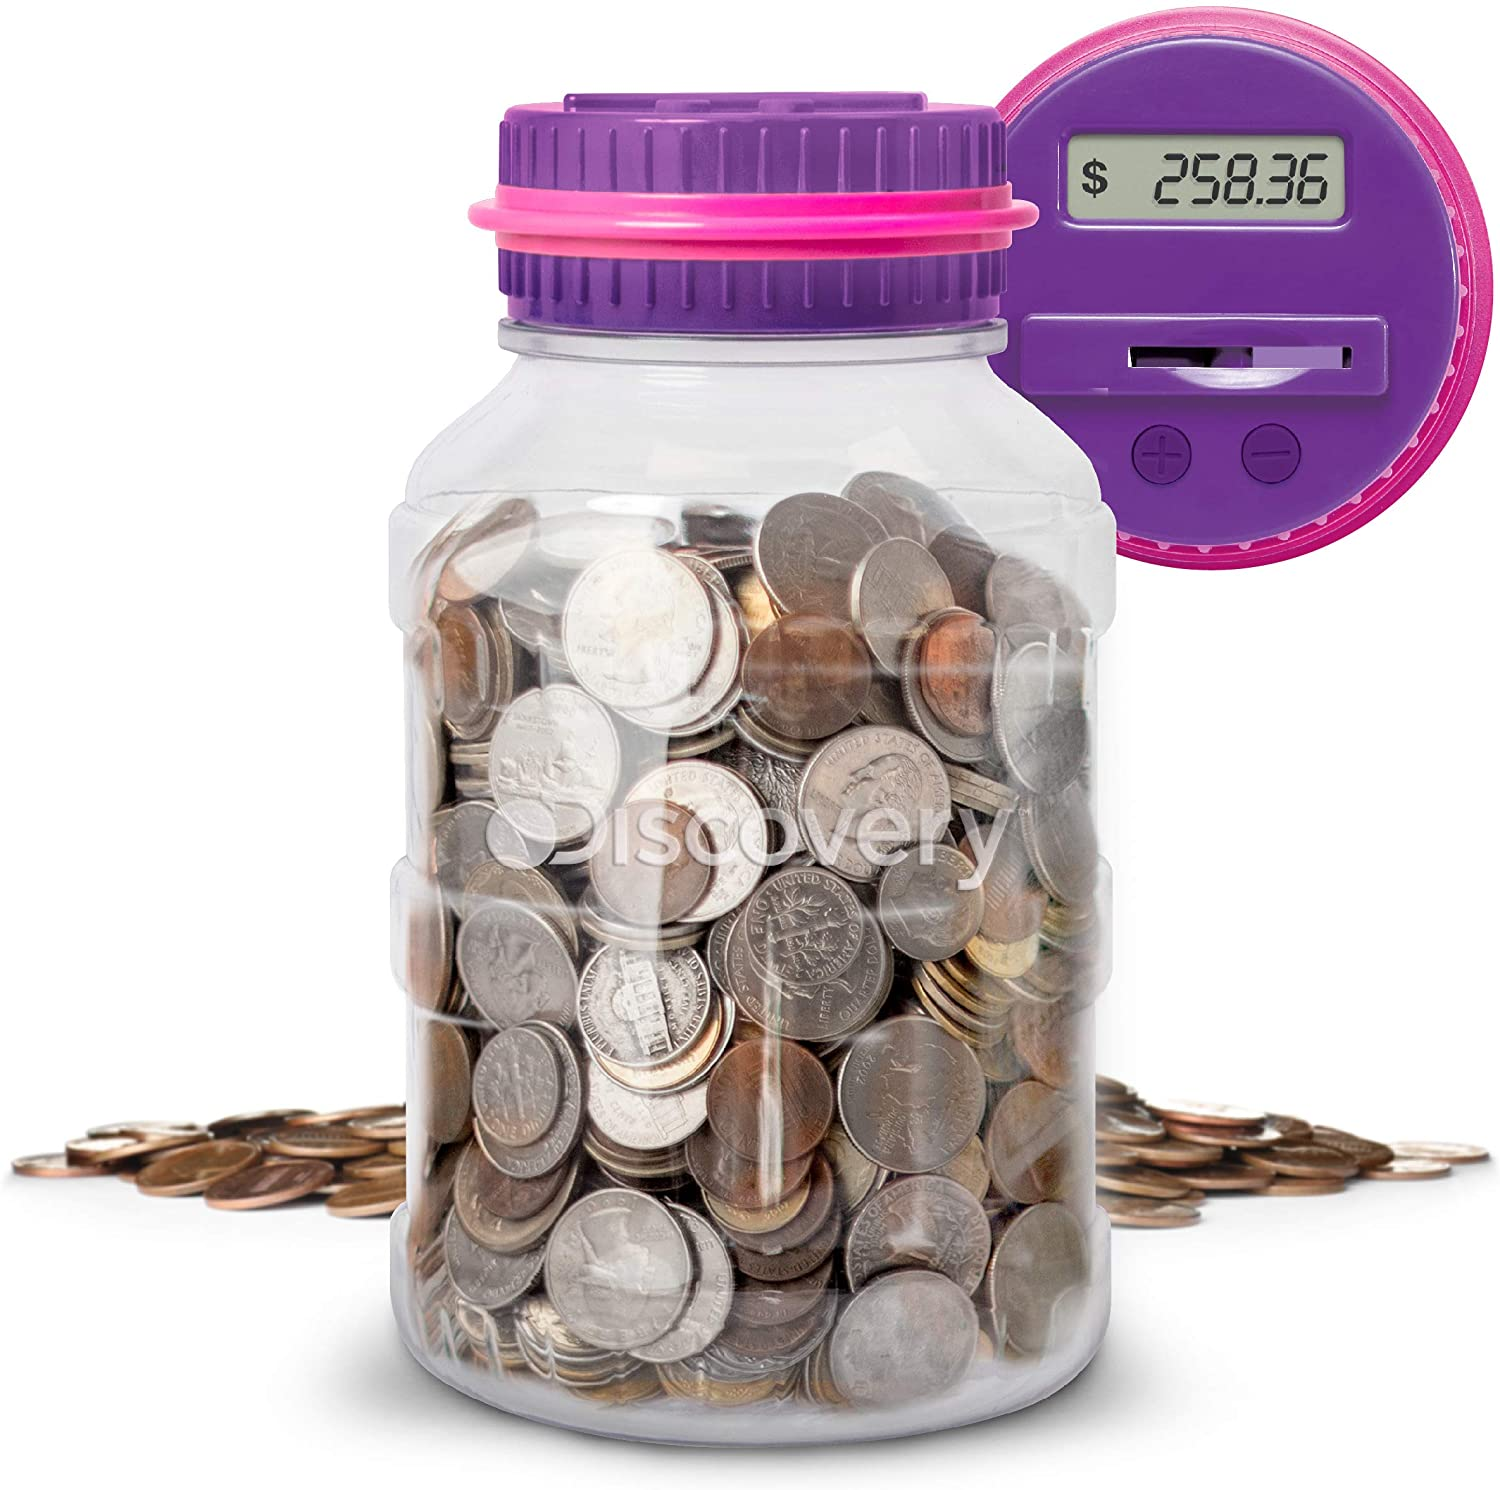 Discovery Kids Digital Coin-Counting Money Jar with LCD Screen, Purple